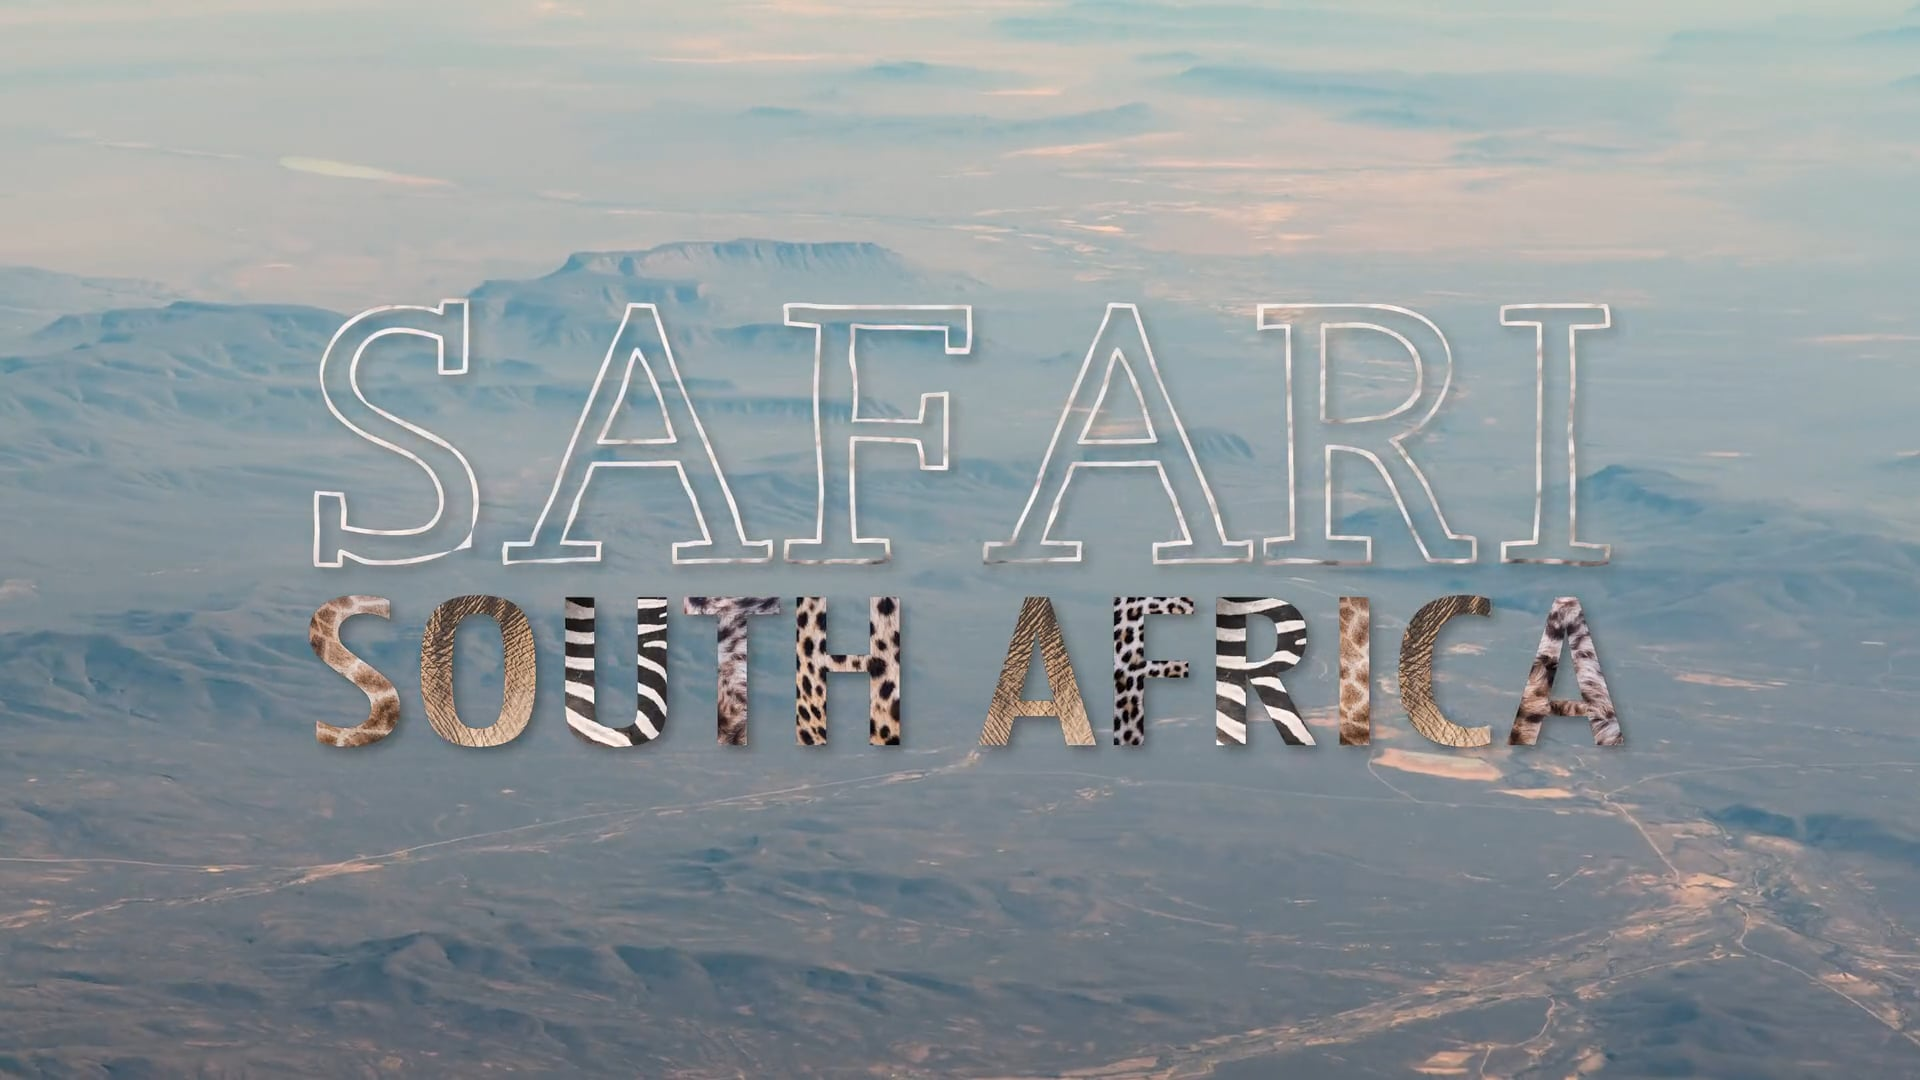 SAFARI South Africa   A Time-Lapse Film - In 4K